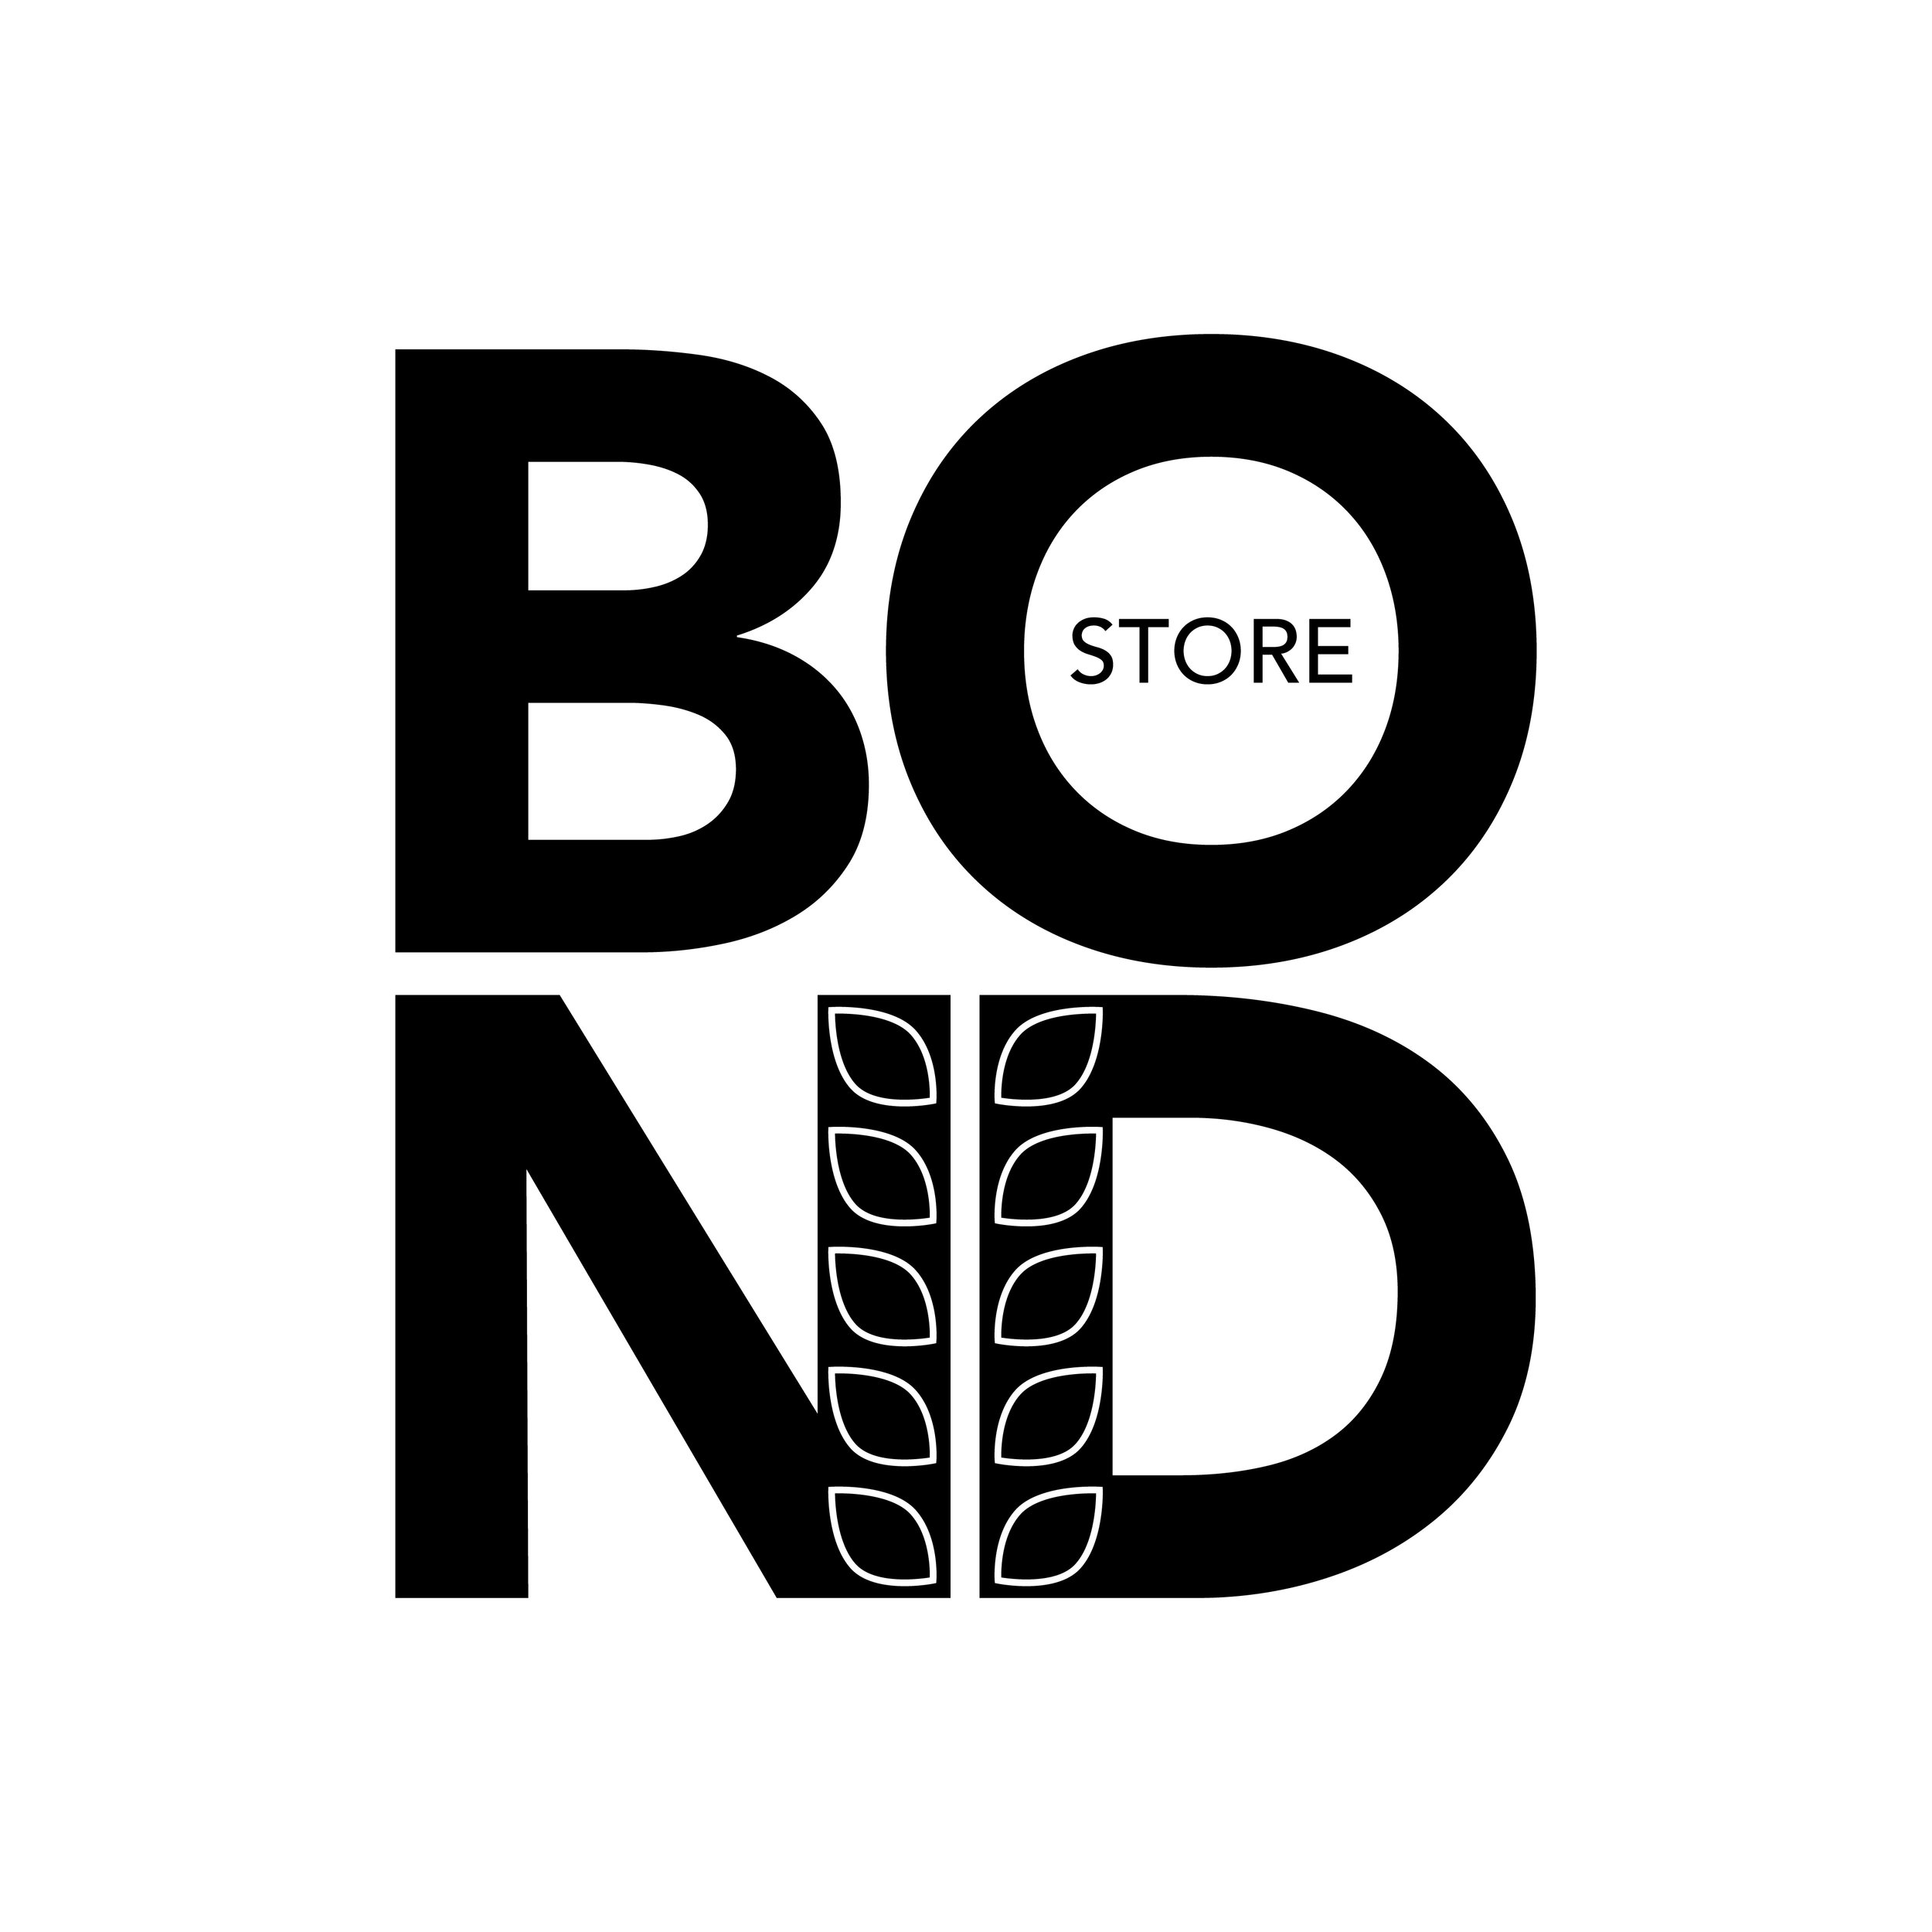 Bond Store Wallaroo